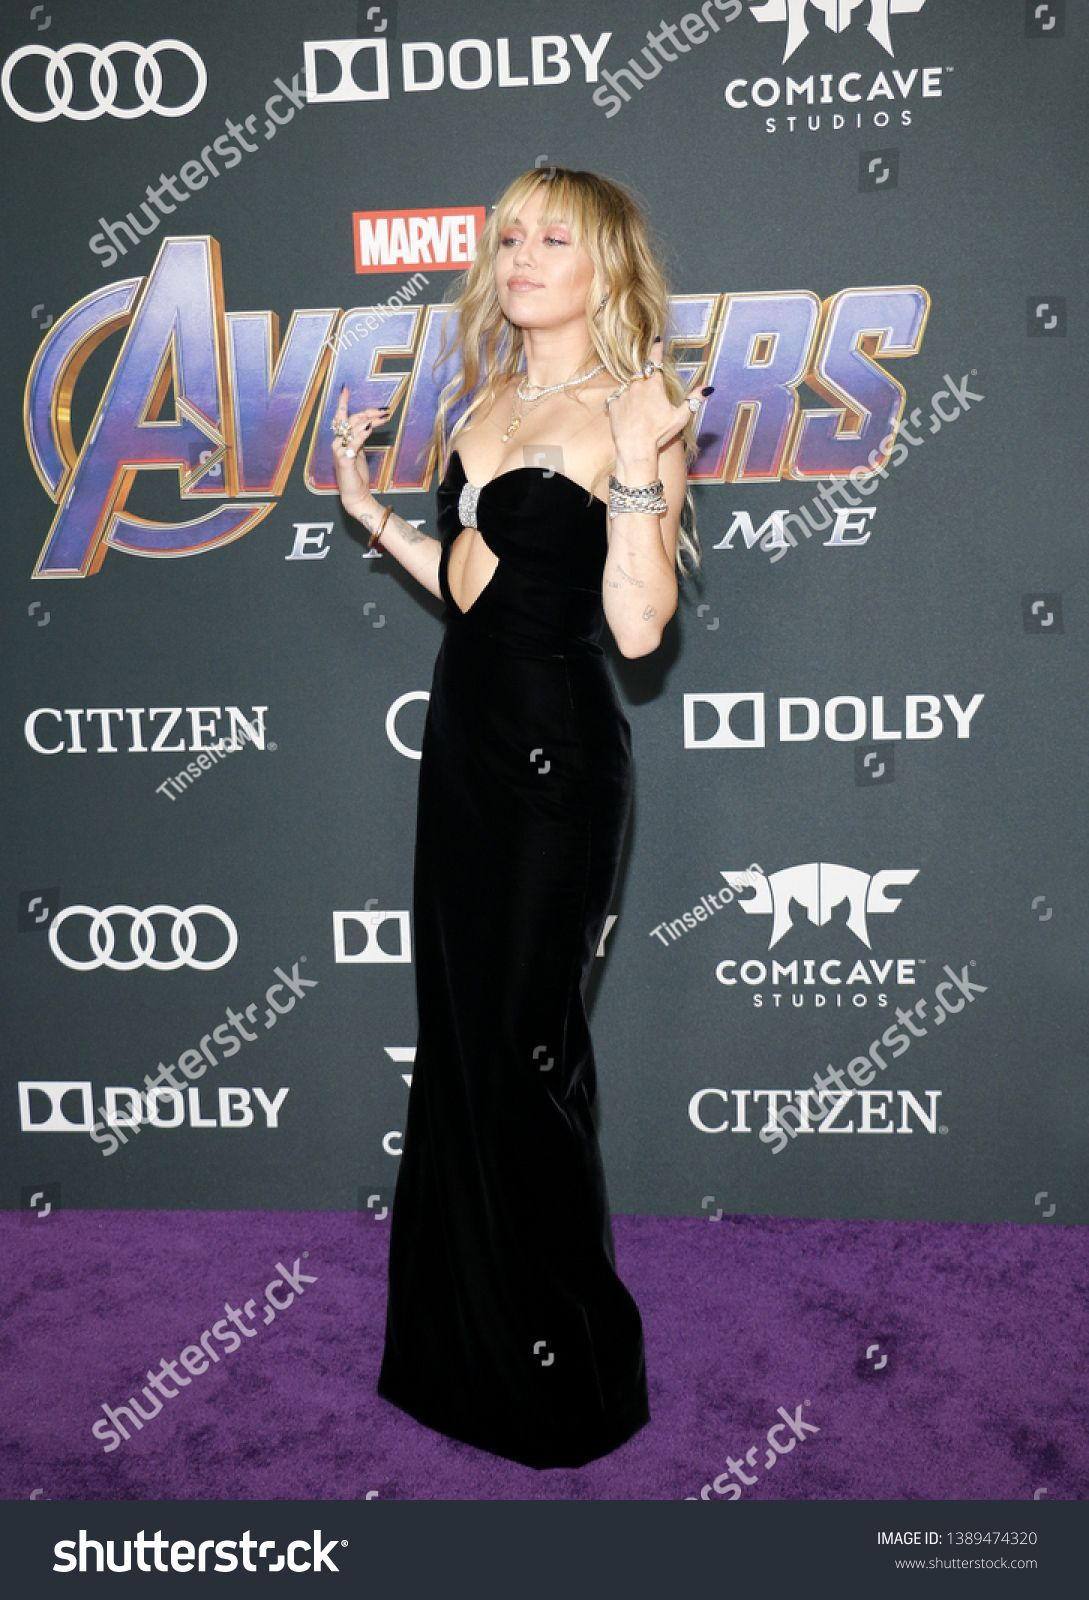 Miley Cyrus at the World premiere of 'Avengers Endgame